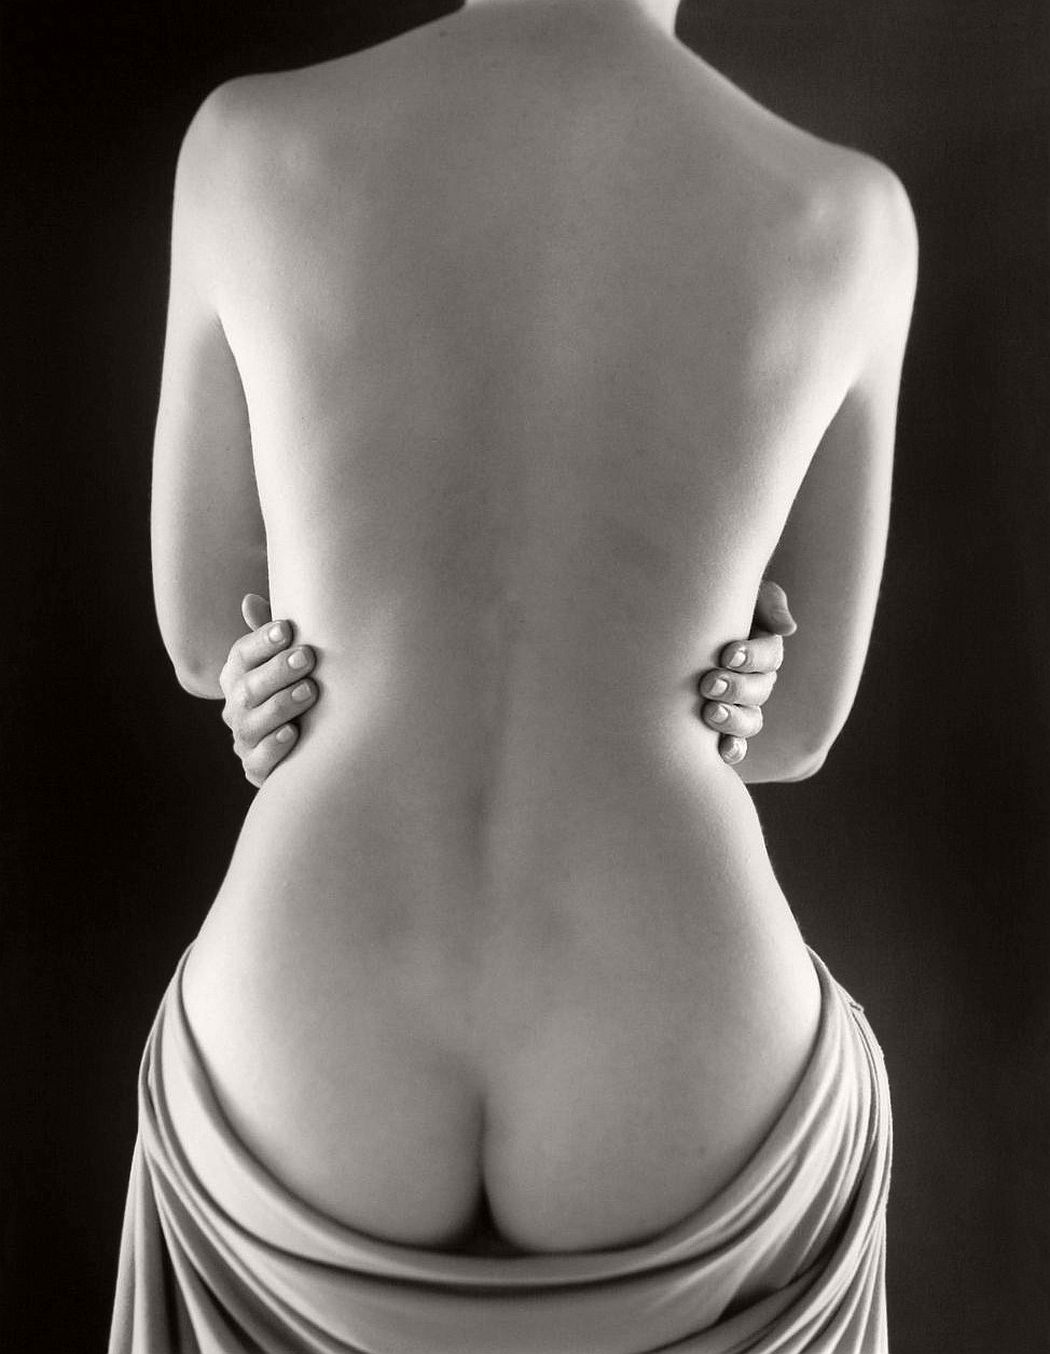 nude-photographer-ruth-bernhard-14